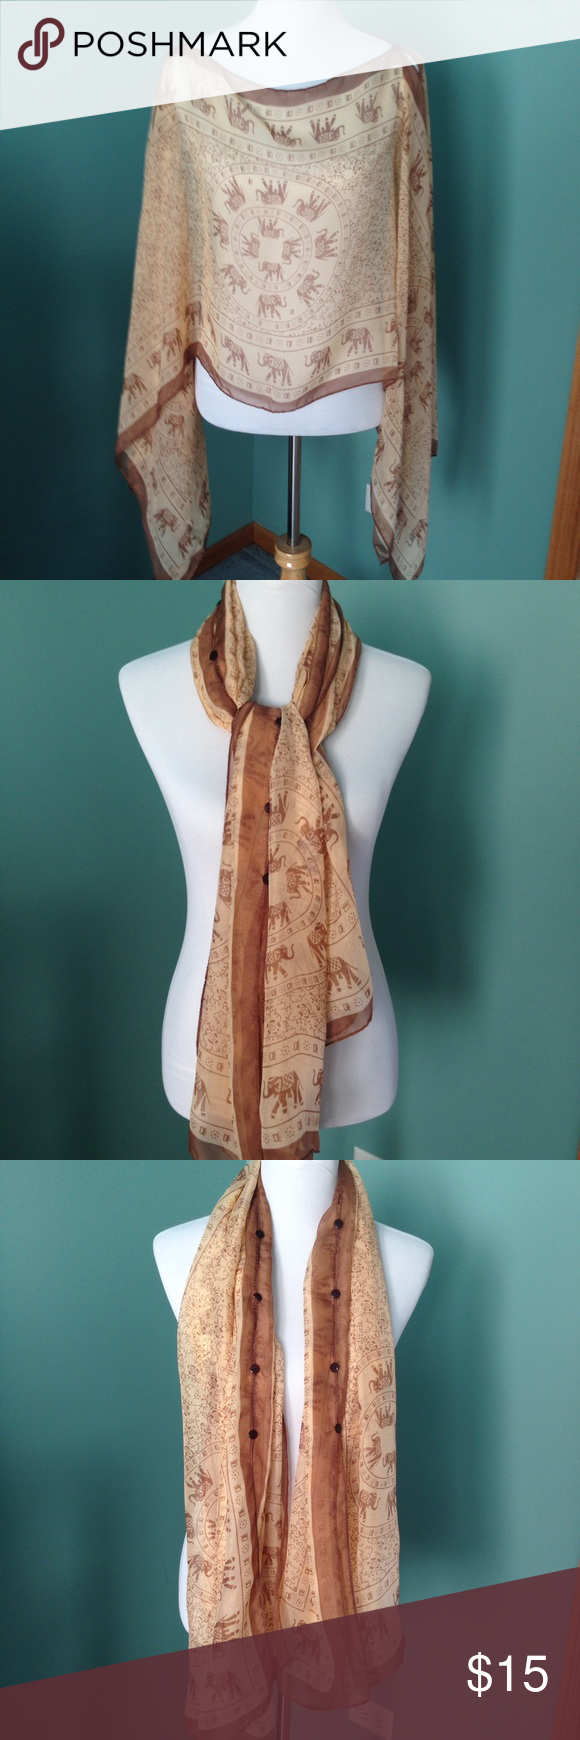 Multi purpose scarf A ancient designed scarf that can be used in different ways. It's a 2 scarf connected together with cute brown buttons. It's in excellent condition! Accessories Scarves & Wraps